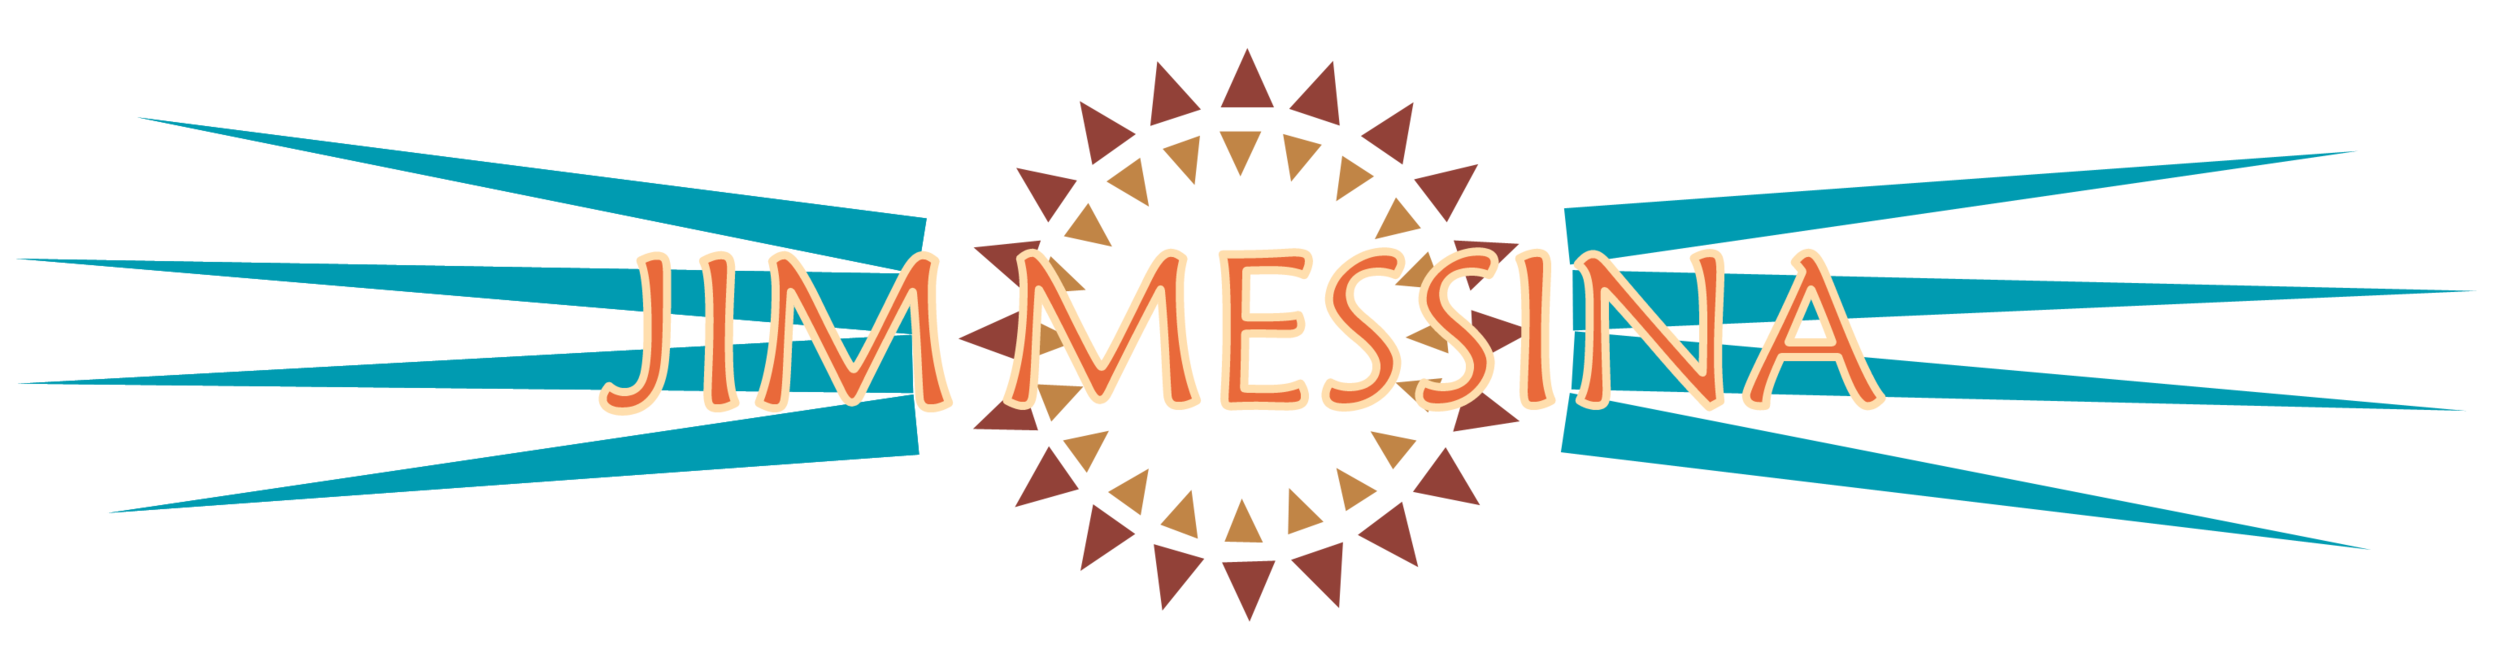 JimMessina_Logo_new_2019.png